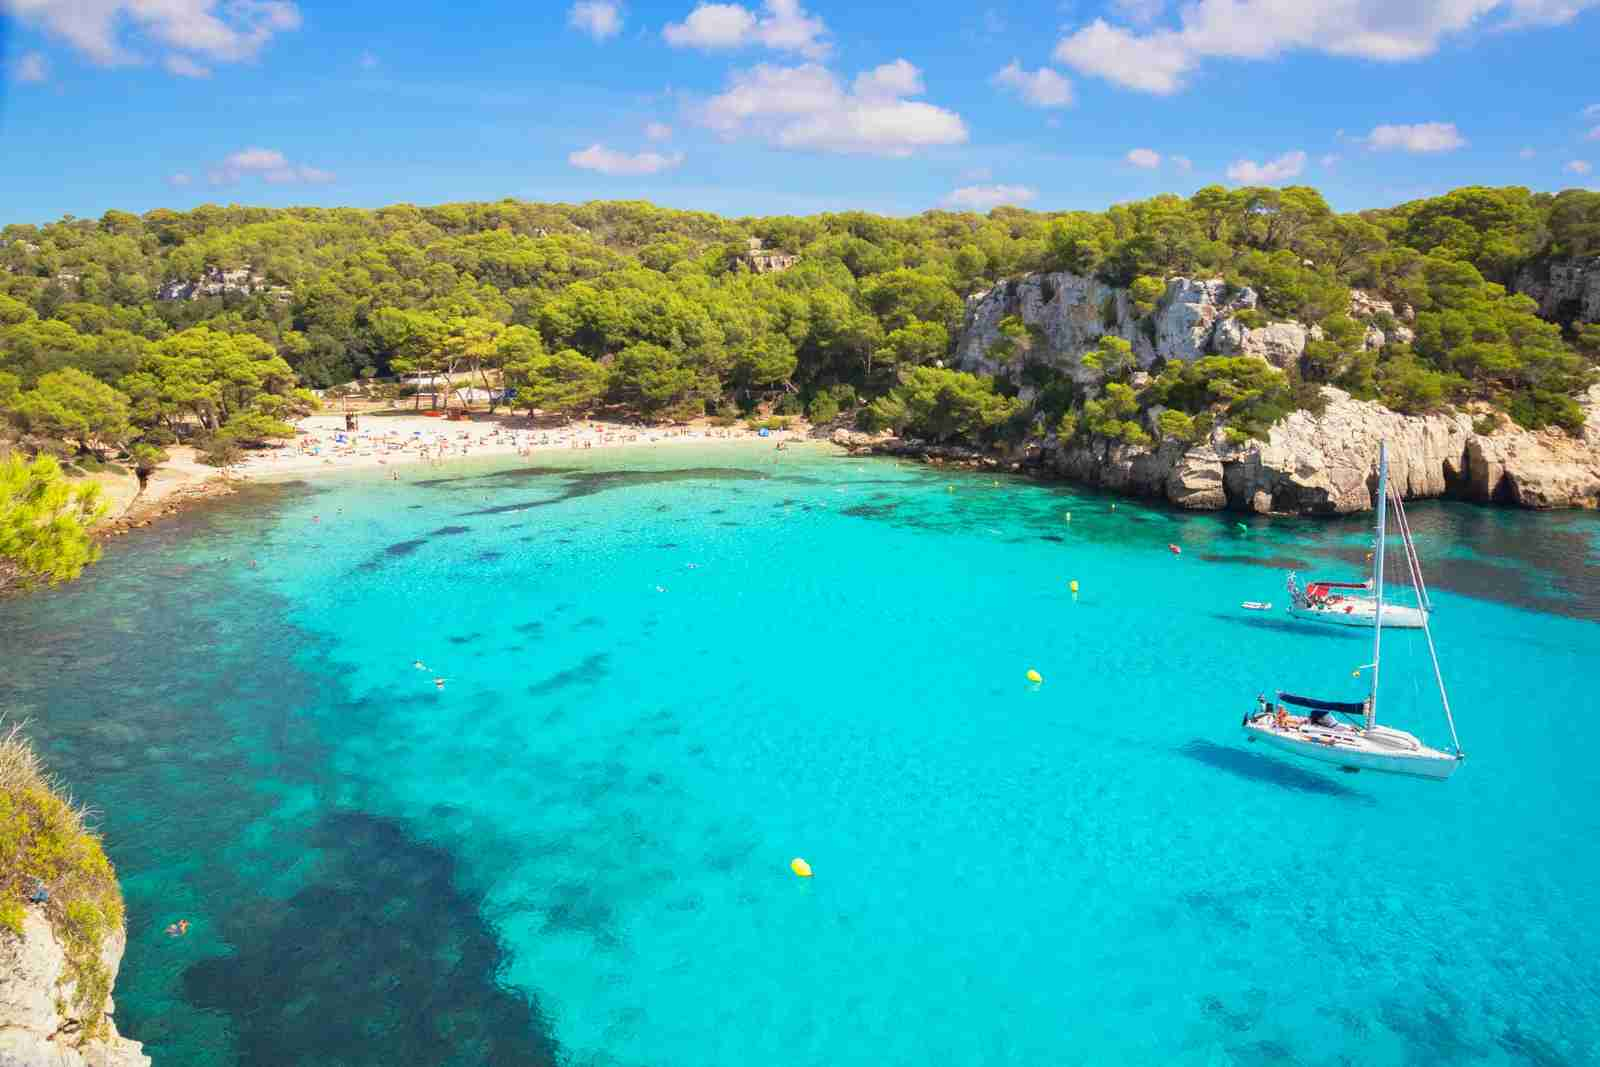 Cala Macarella. (Photo by Marco Simoni/Getty Images)